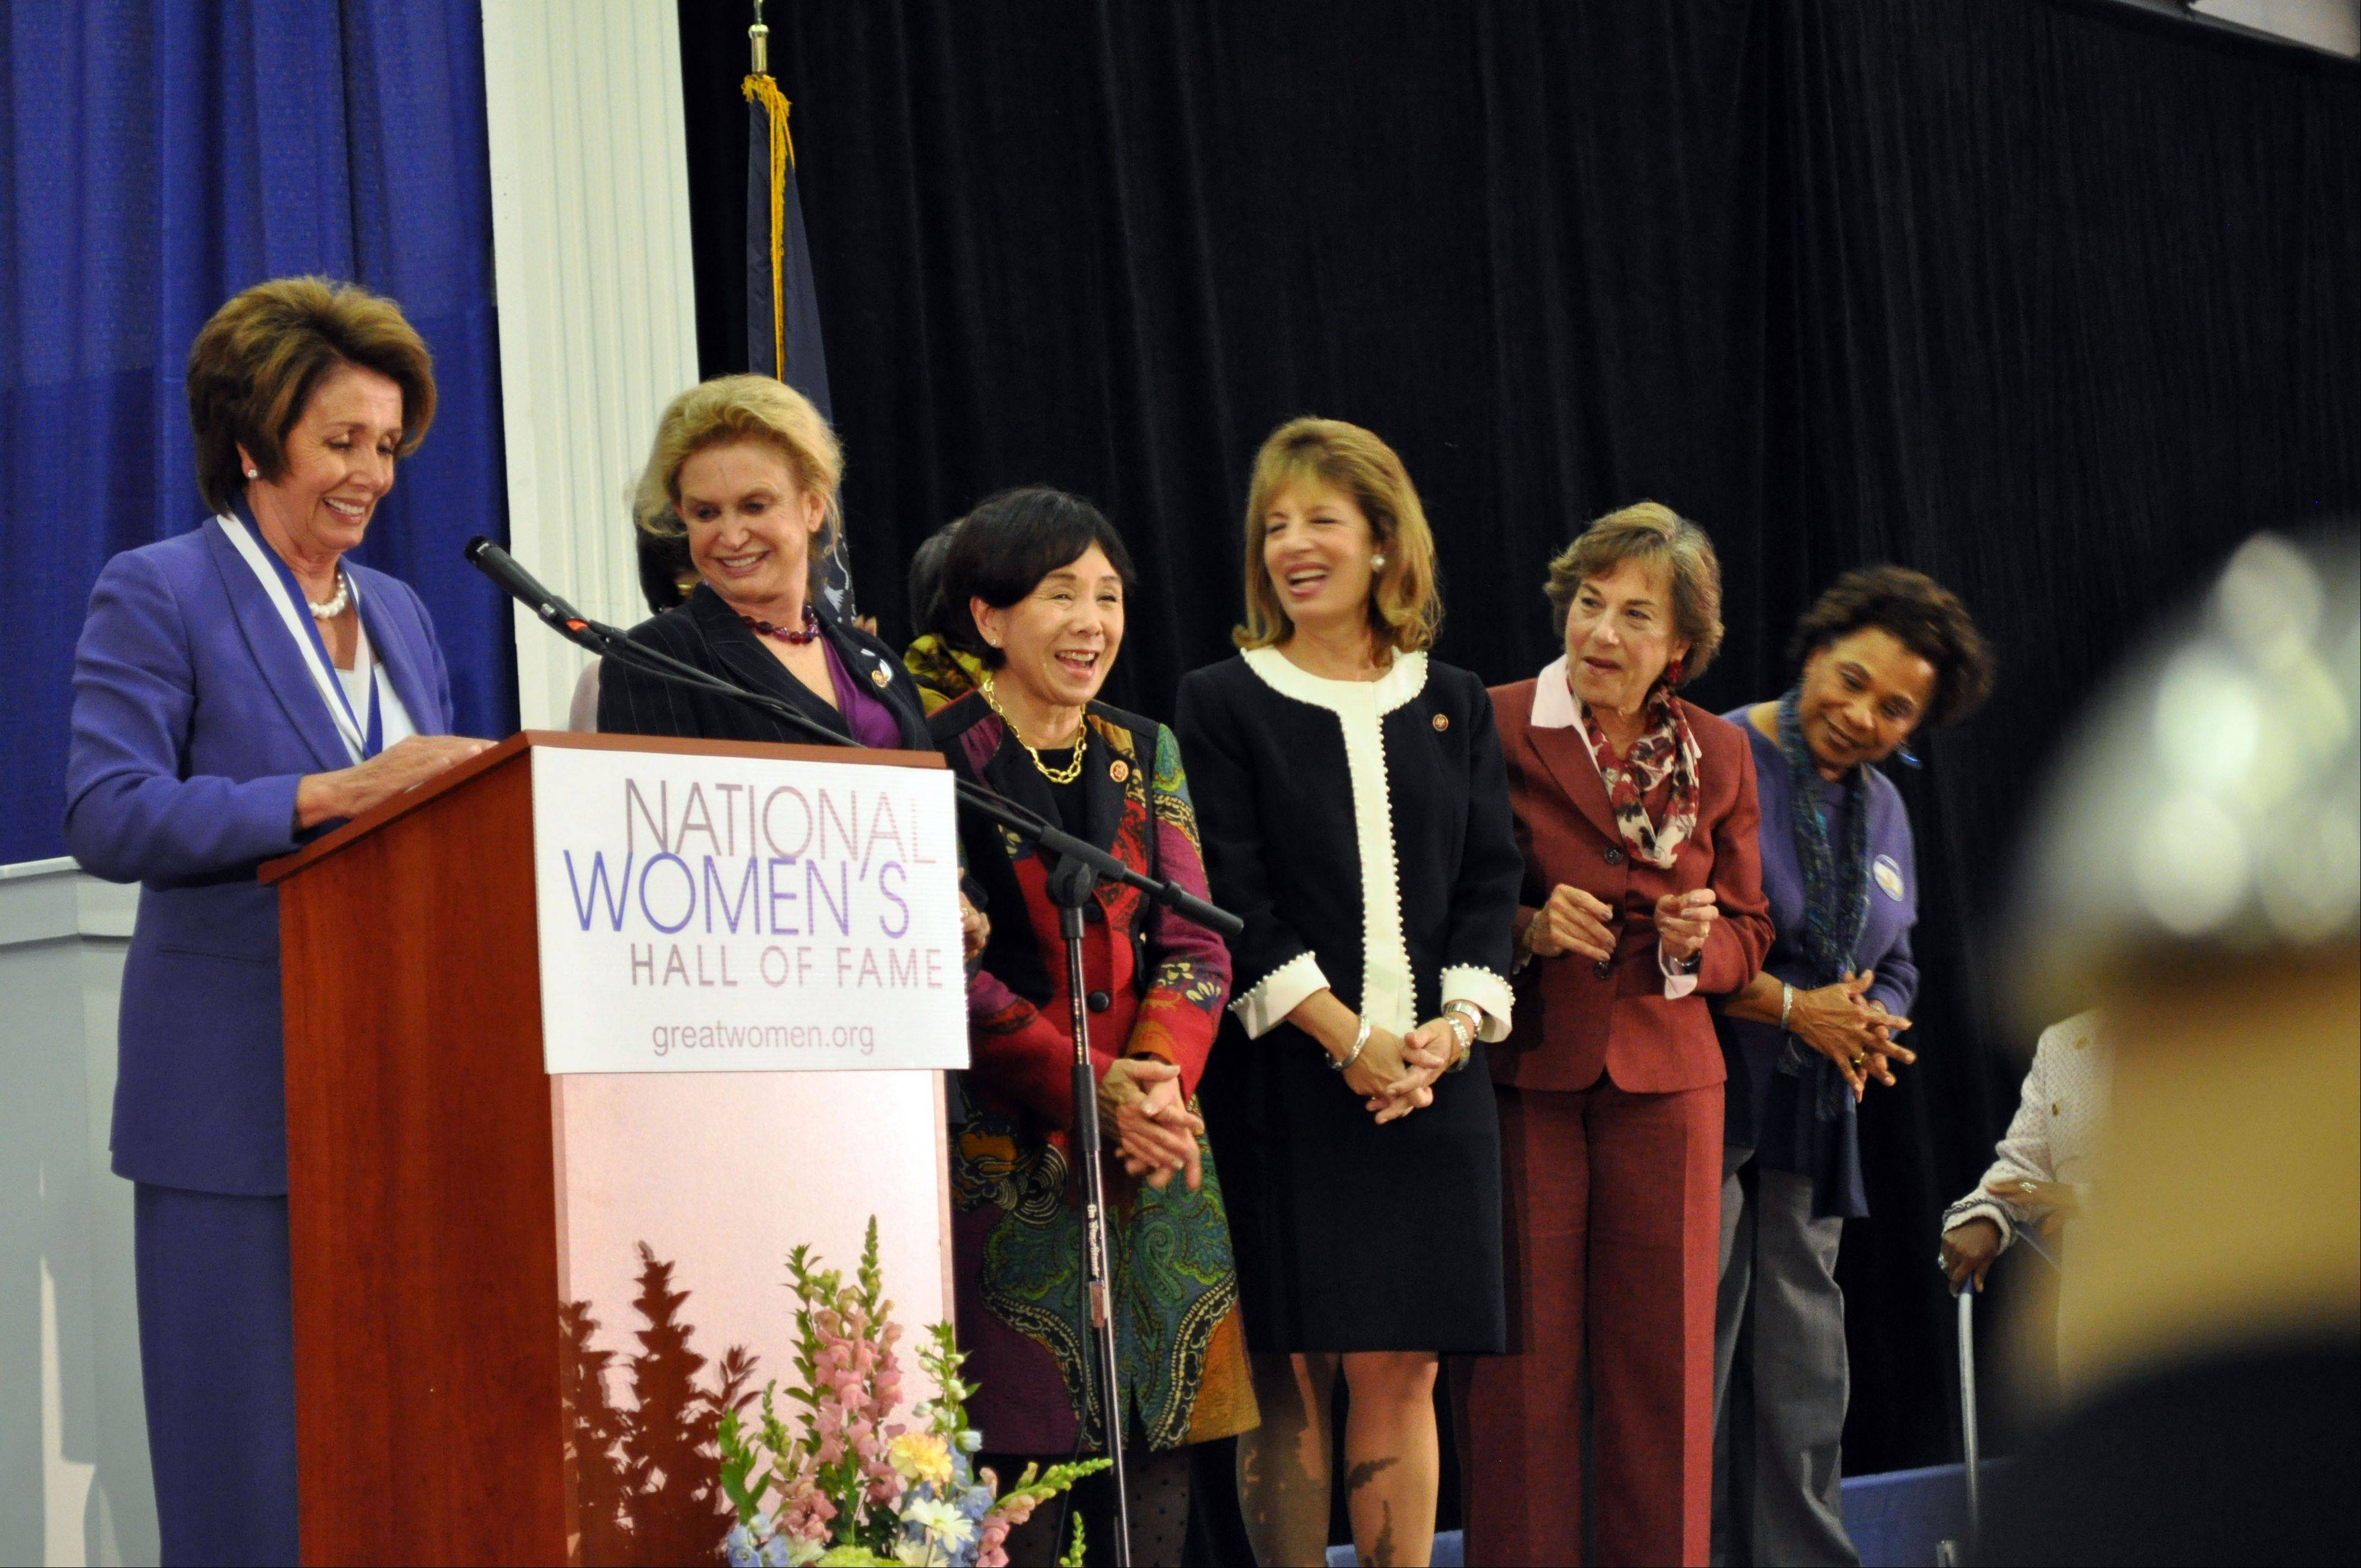 Nancy Pelosi invites fellow congresswomen onto the stage Saturday during her acceptance speech during the induction ceremony for the National Women's Hall of Fame at the New York Chiropractic College Athletic Center in Seneca Falls, N.Y.